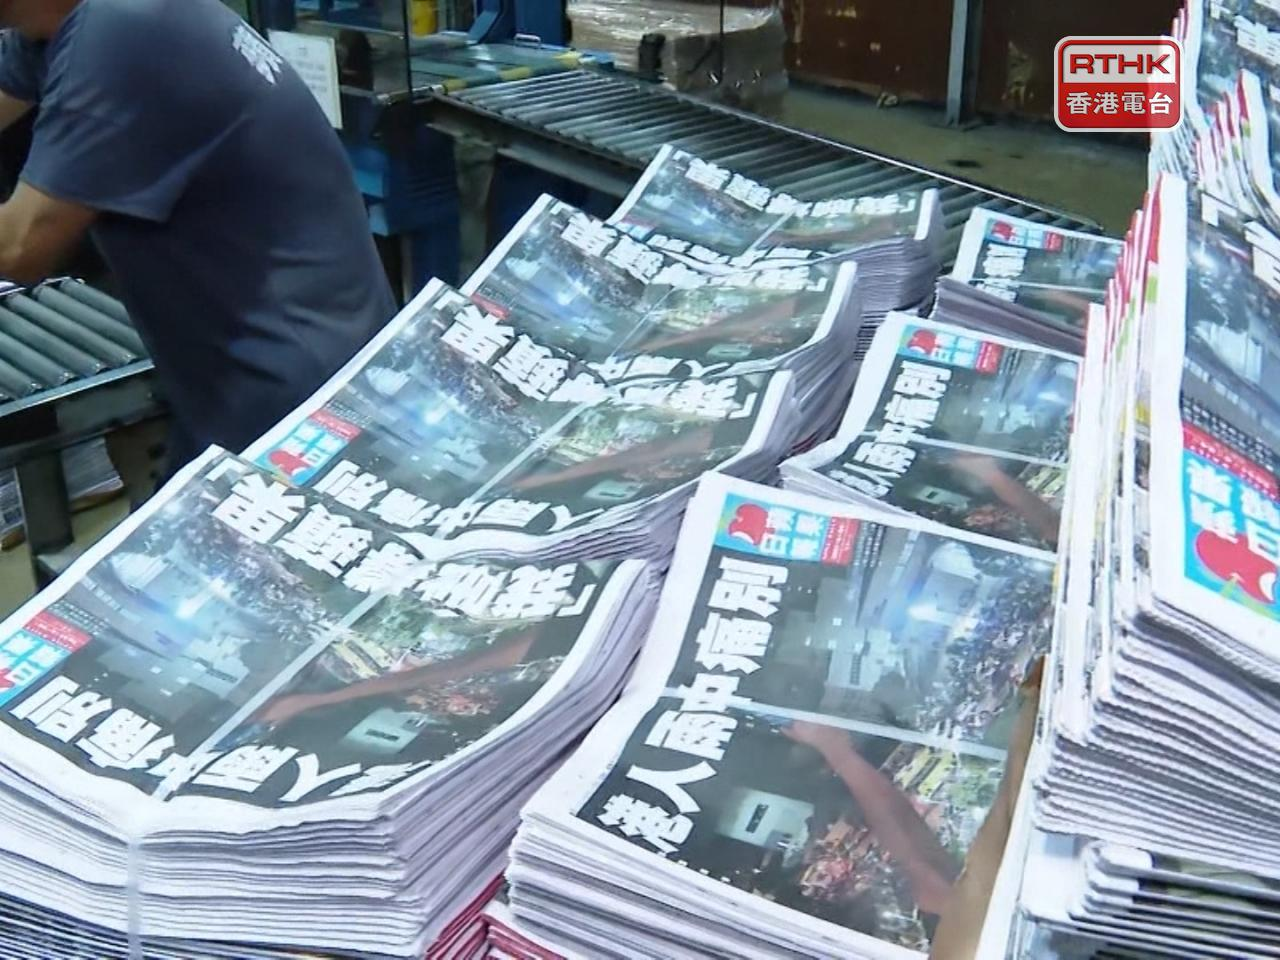 The four people charged all worked for Apple Daily. File photo: RTHK